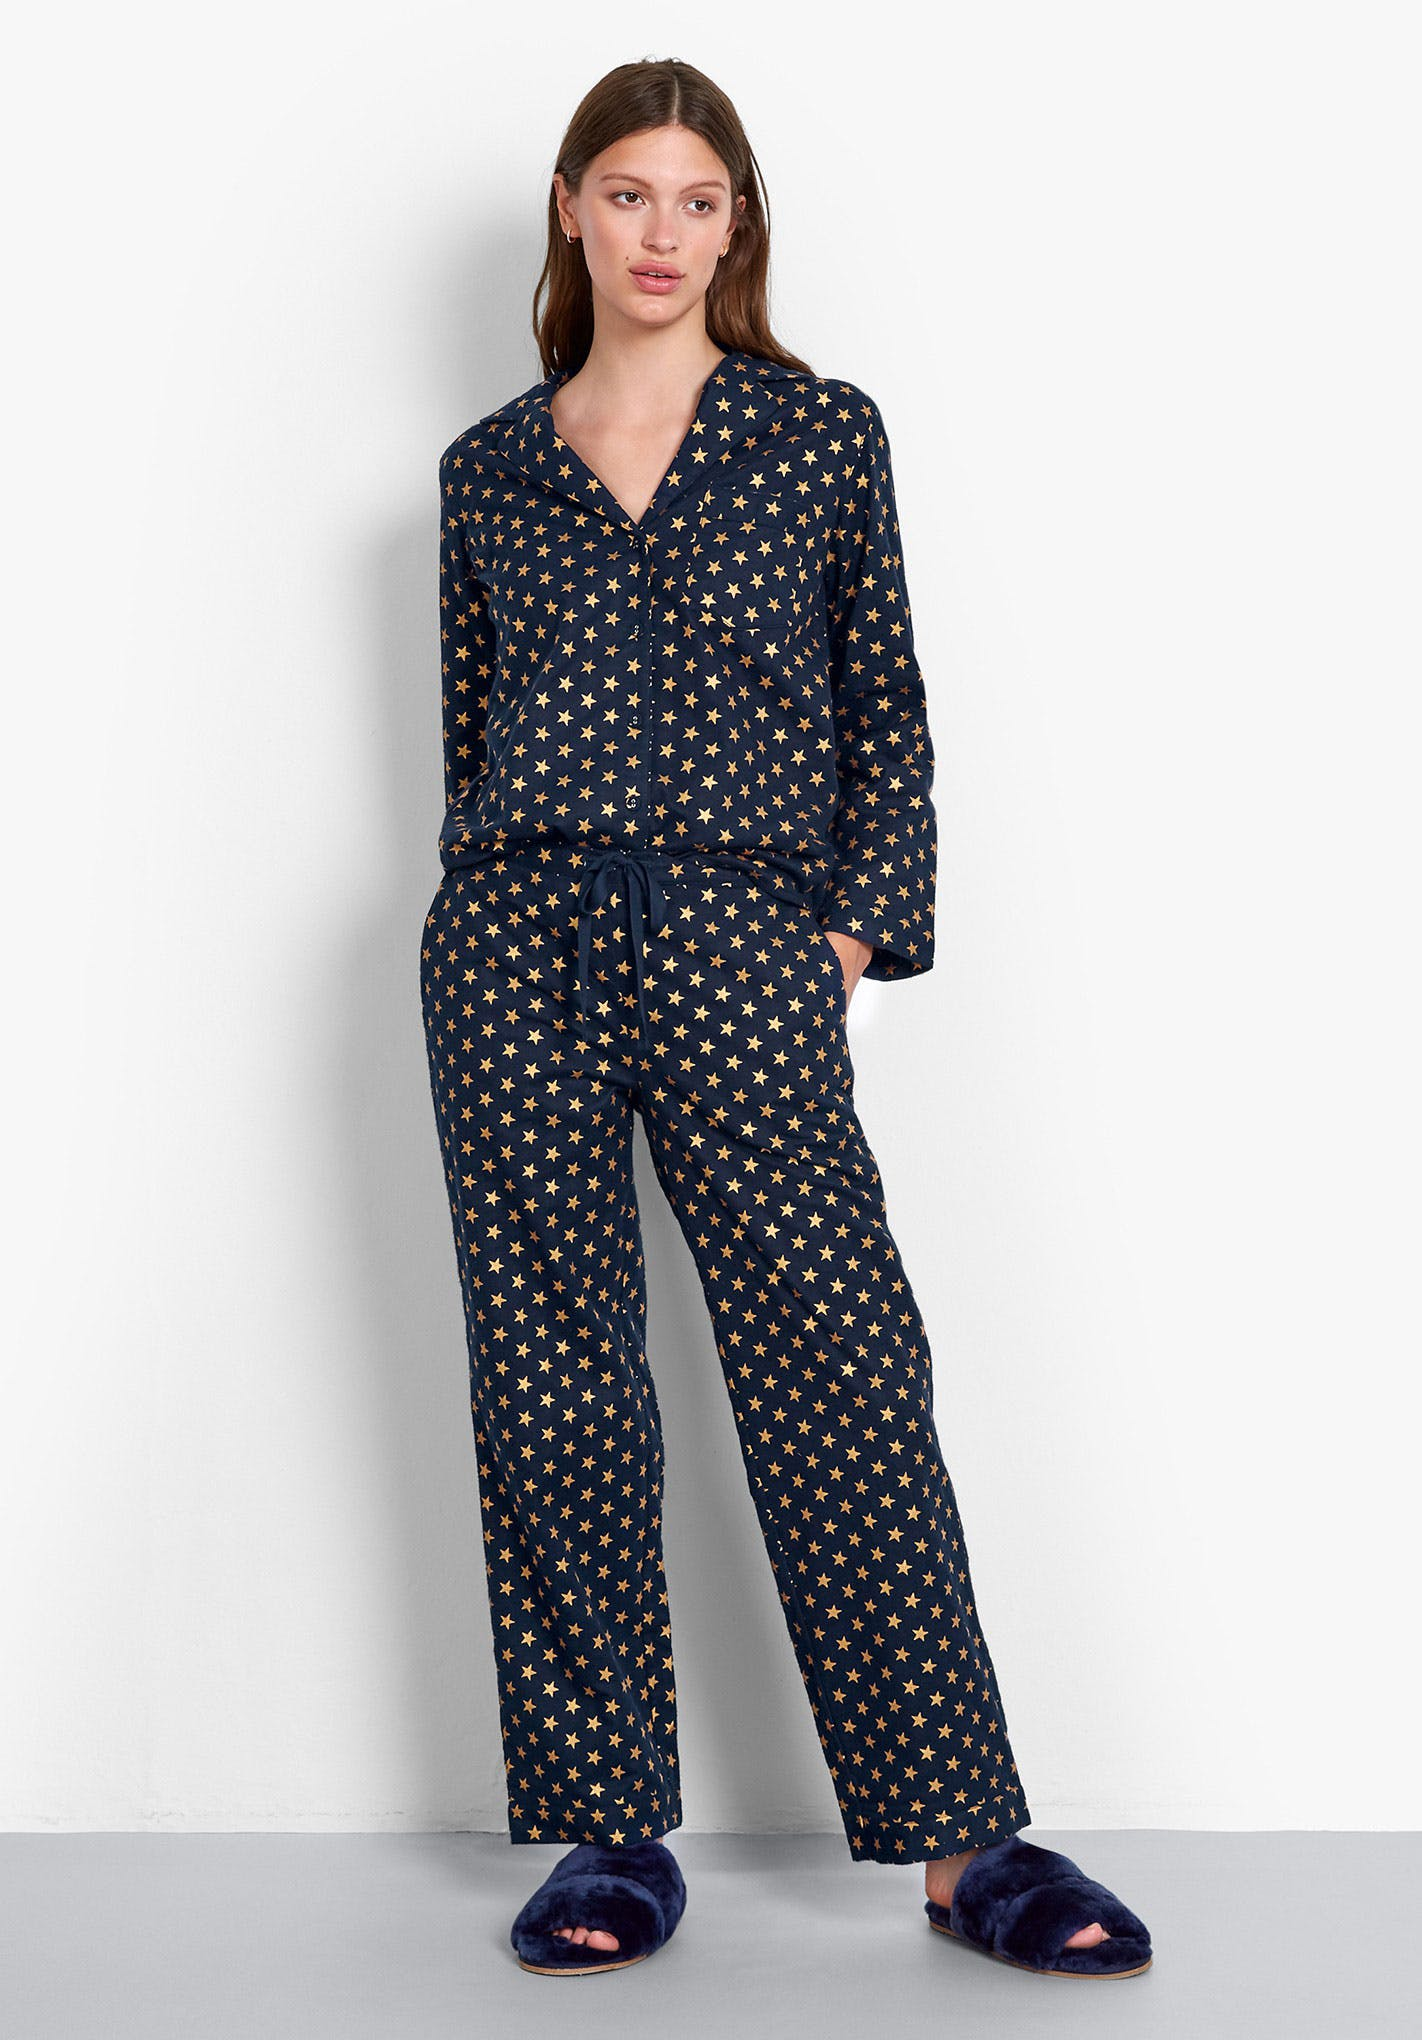 Hush Gold Star Flannel Pyjamas £55